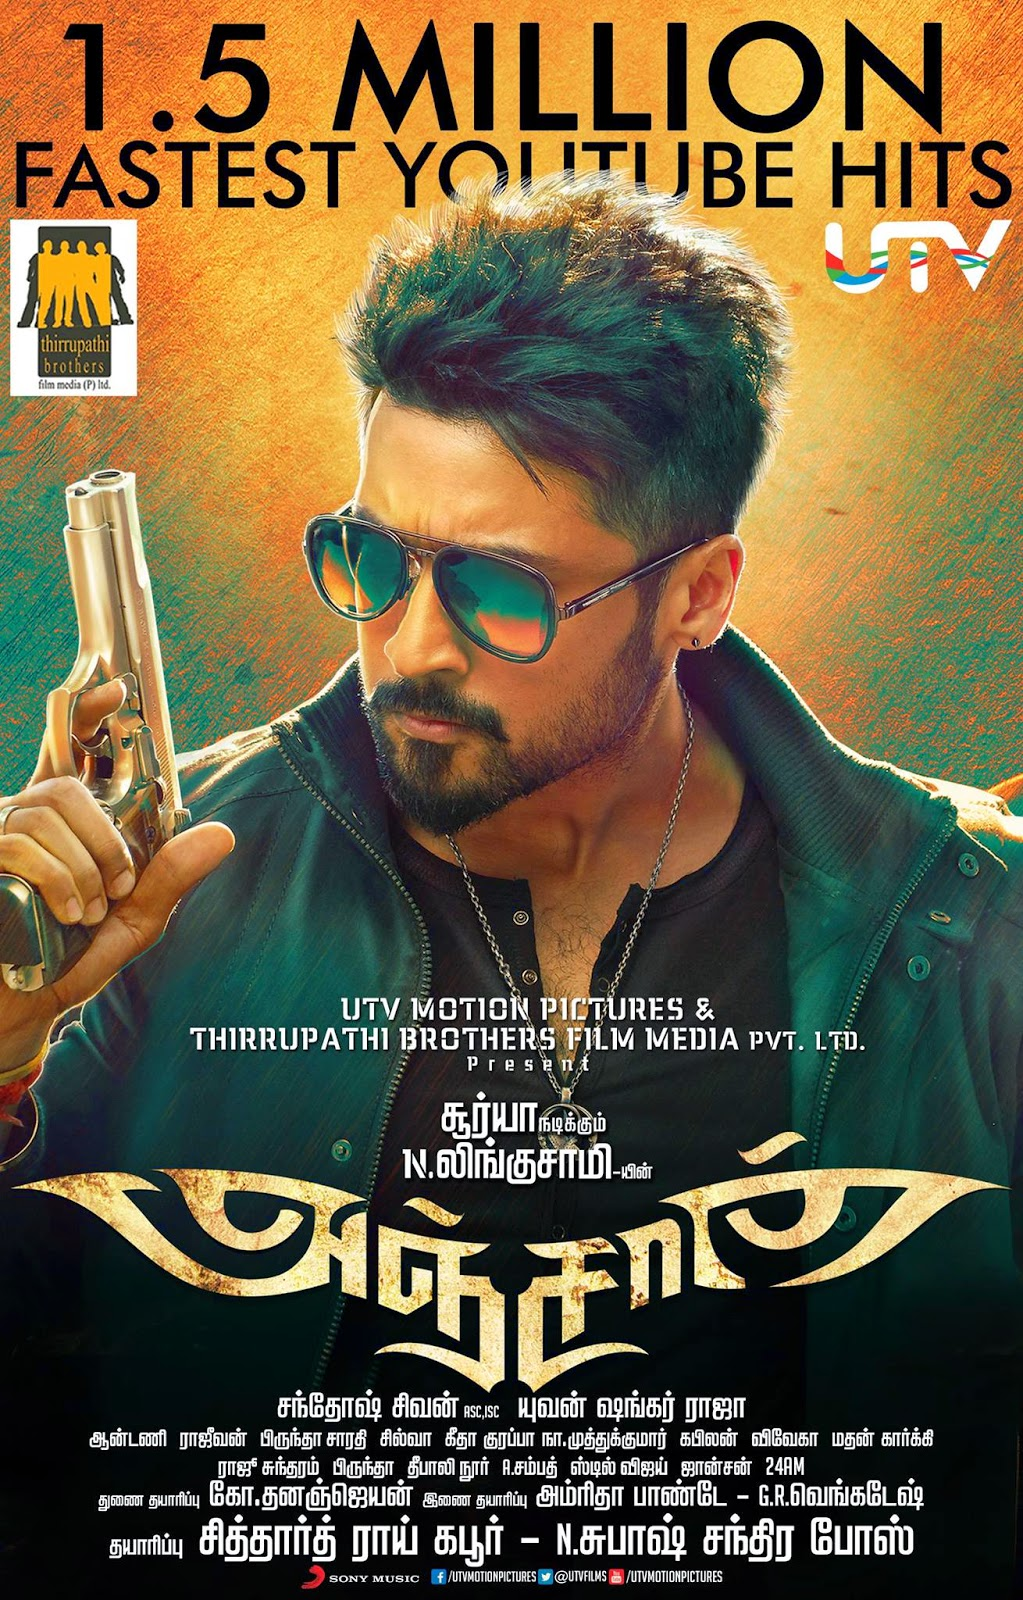 anjaan youtube promote photos in hd - actor surya masss movie first